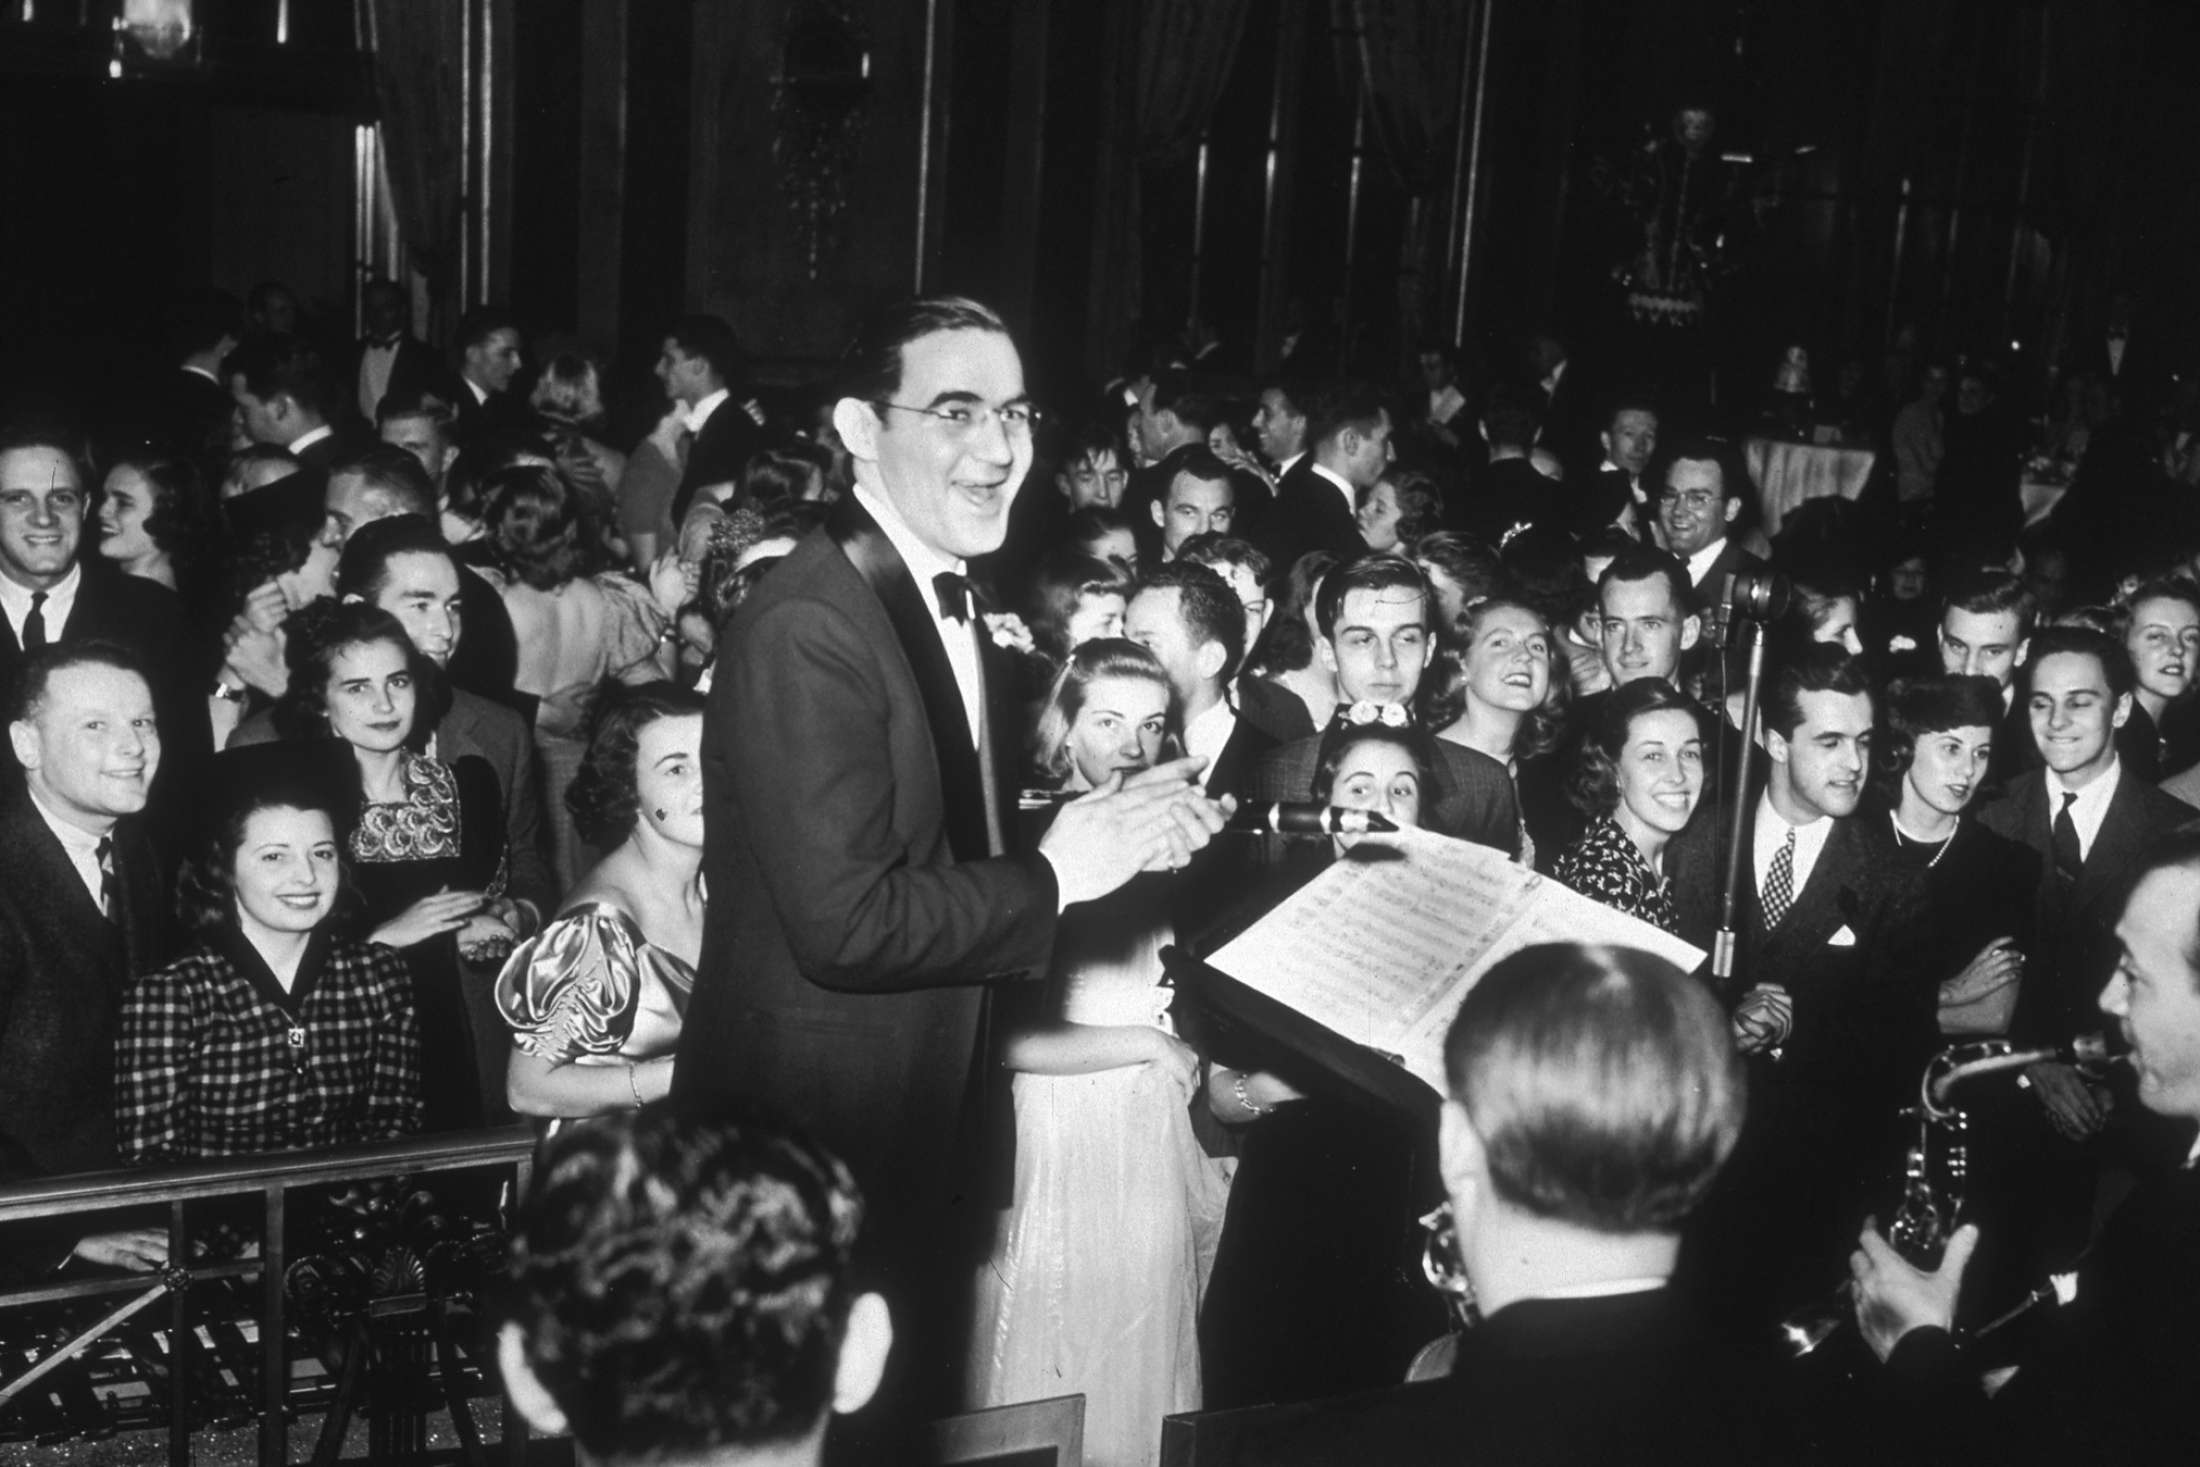 American jazz musician and bandleader Benny Goodman and his orchestra play for an enthusiastic audience during a New Year's Eve dance at the Waldorf Astoria, New York City, 1938.